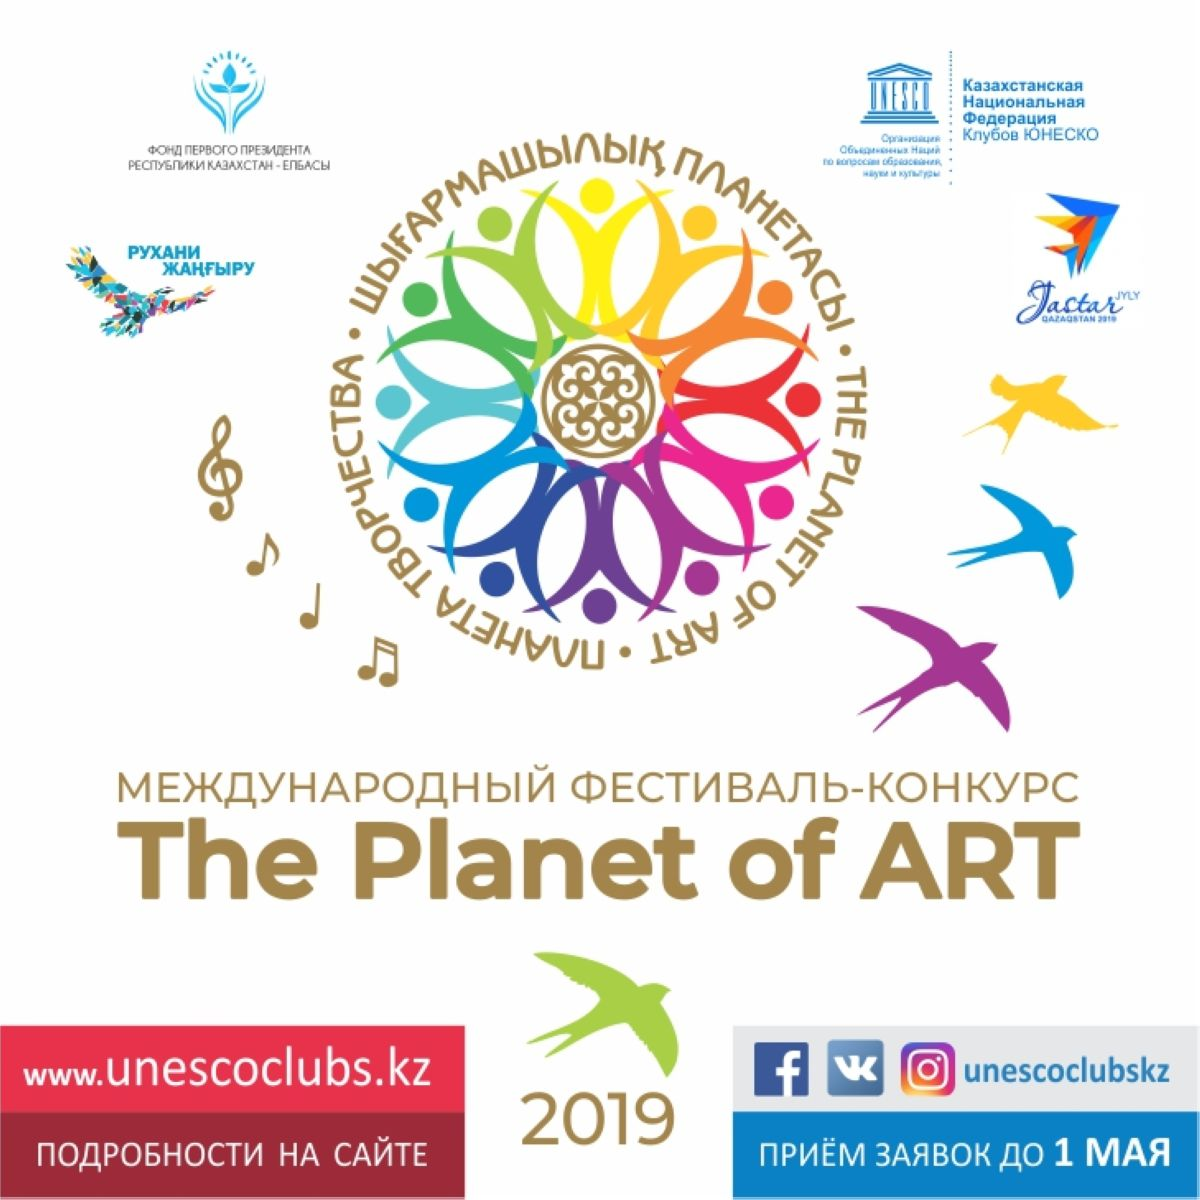 THE PLANET OF ART INSTA 1